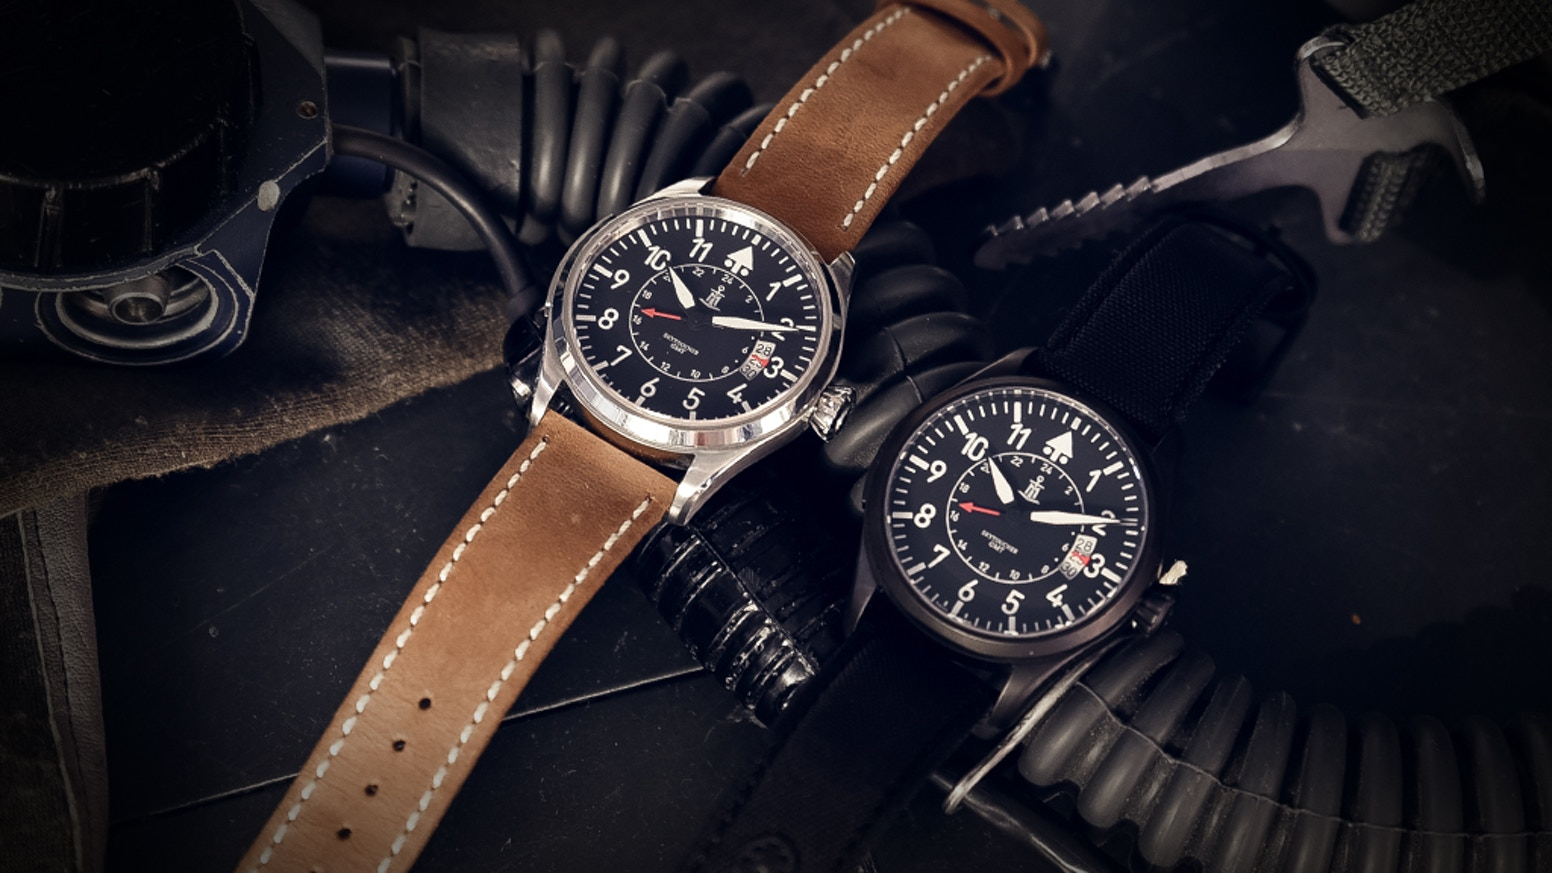 Modern Pilot watch with heritage from classic pilot watches